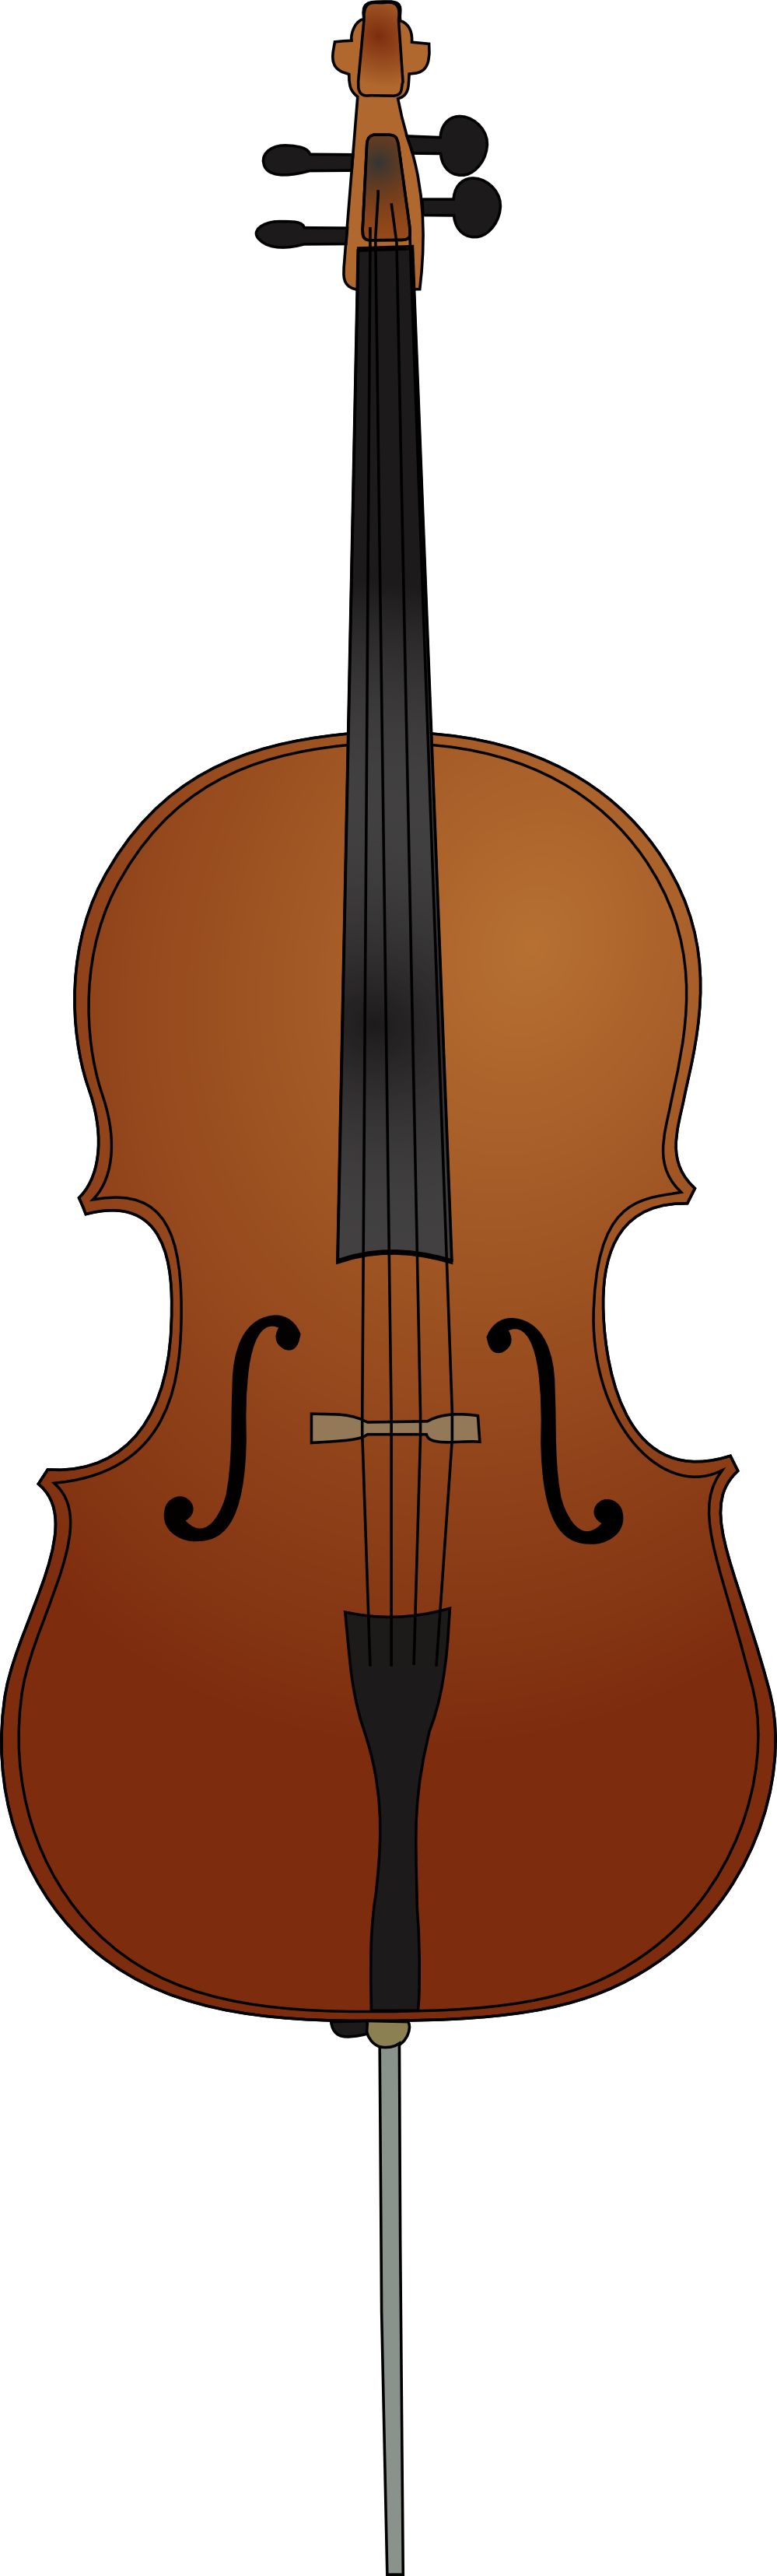 Bucket transparent cello. Free cliparts download clip